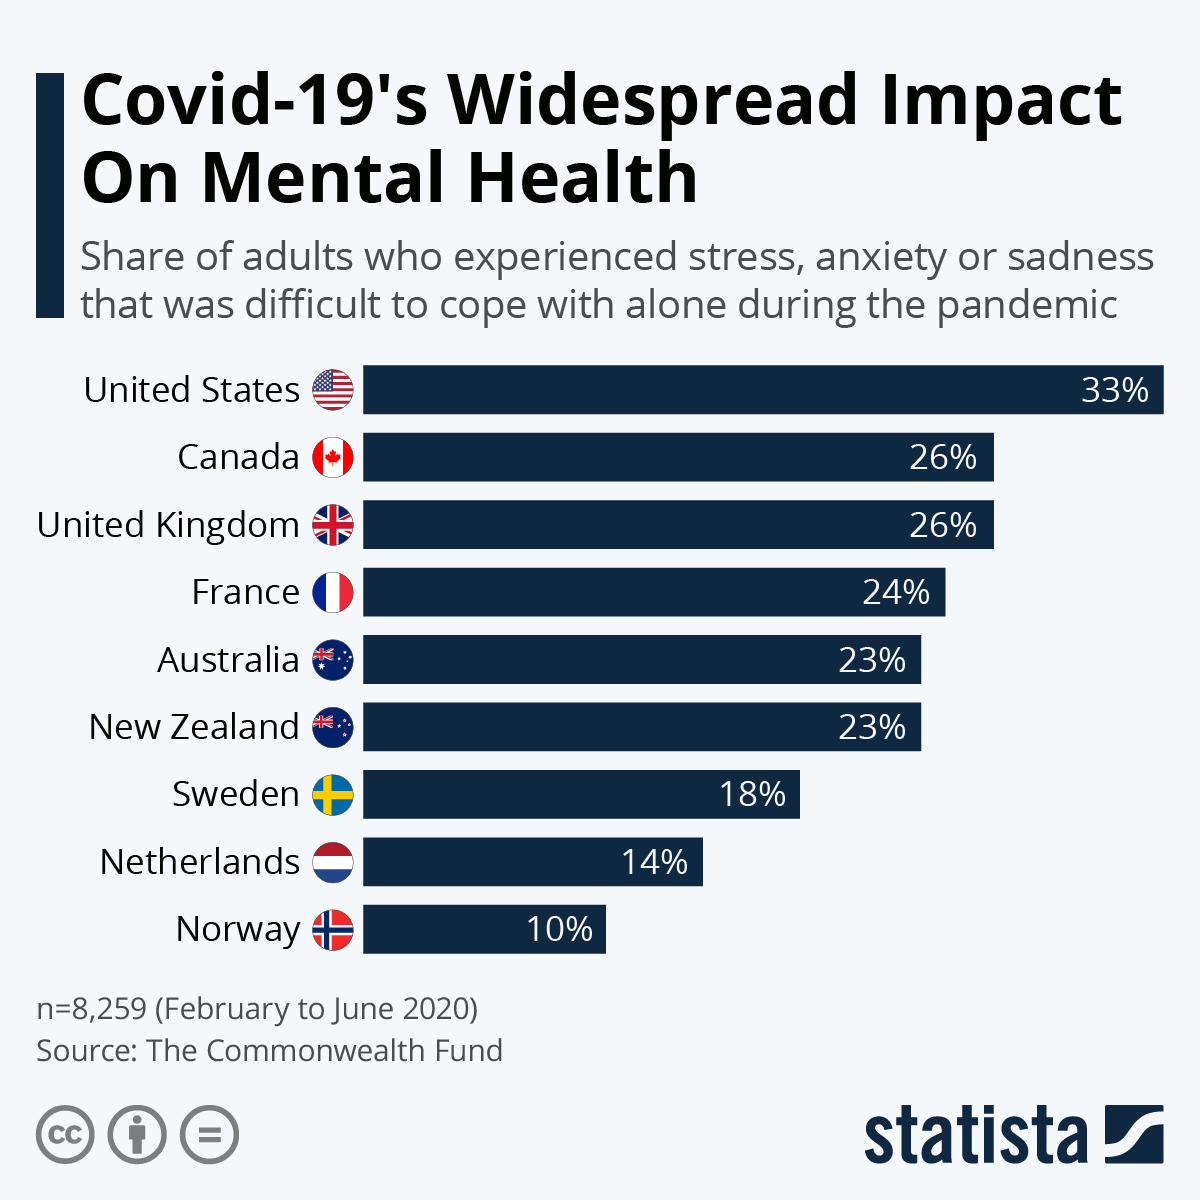 Covid-19's Widespread Impact On Mental Health #Infographic